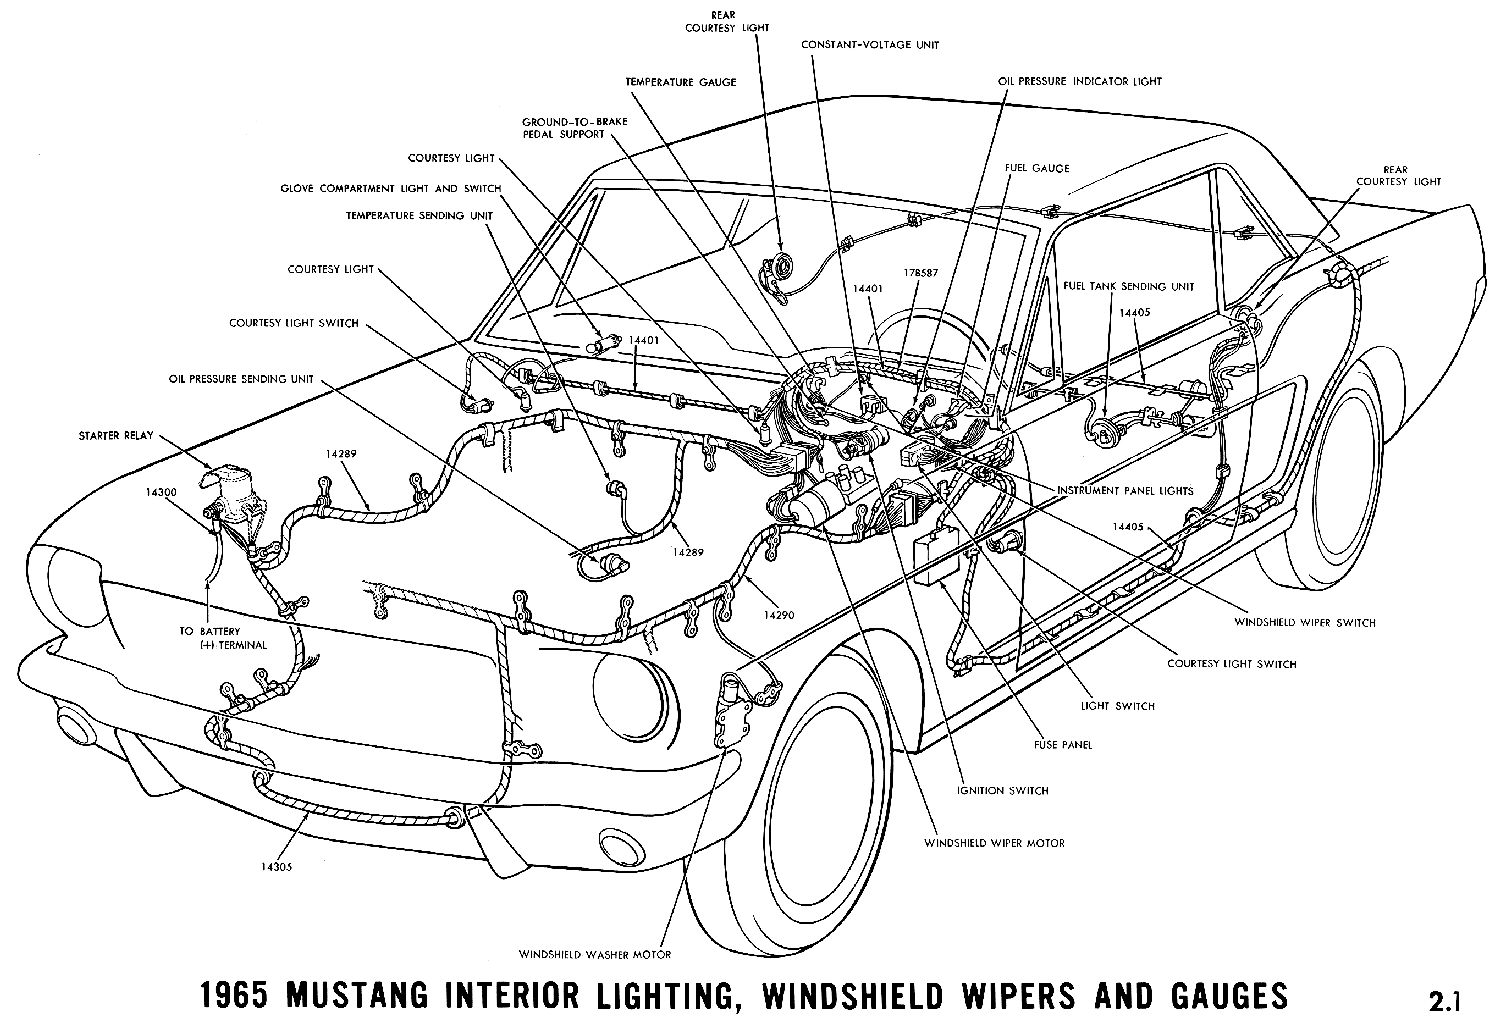 1965 Mustang Wiring Diagrams Average Joe Restoration 69 C10 Guage Amp Diagram 1965f Interior Lights Windshield Wiper And Gauges Pictorial Or Schematic